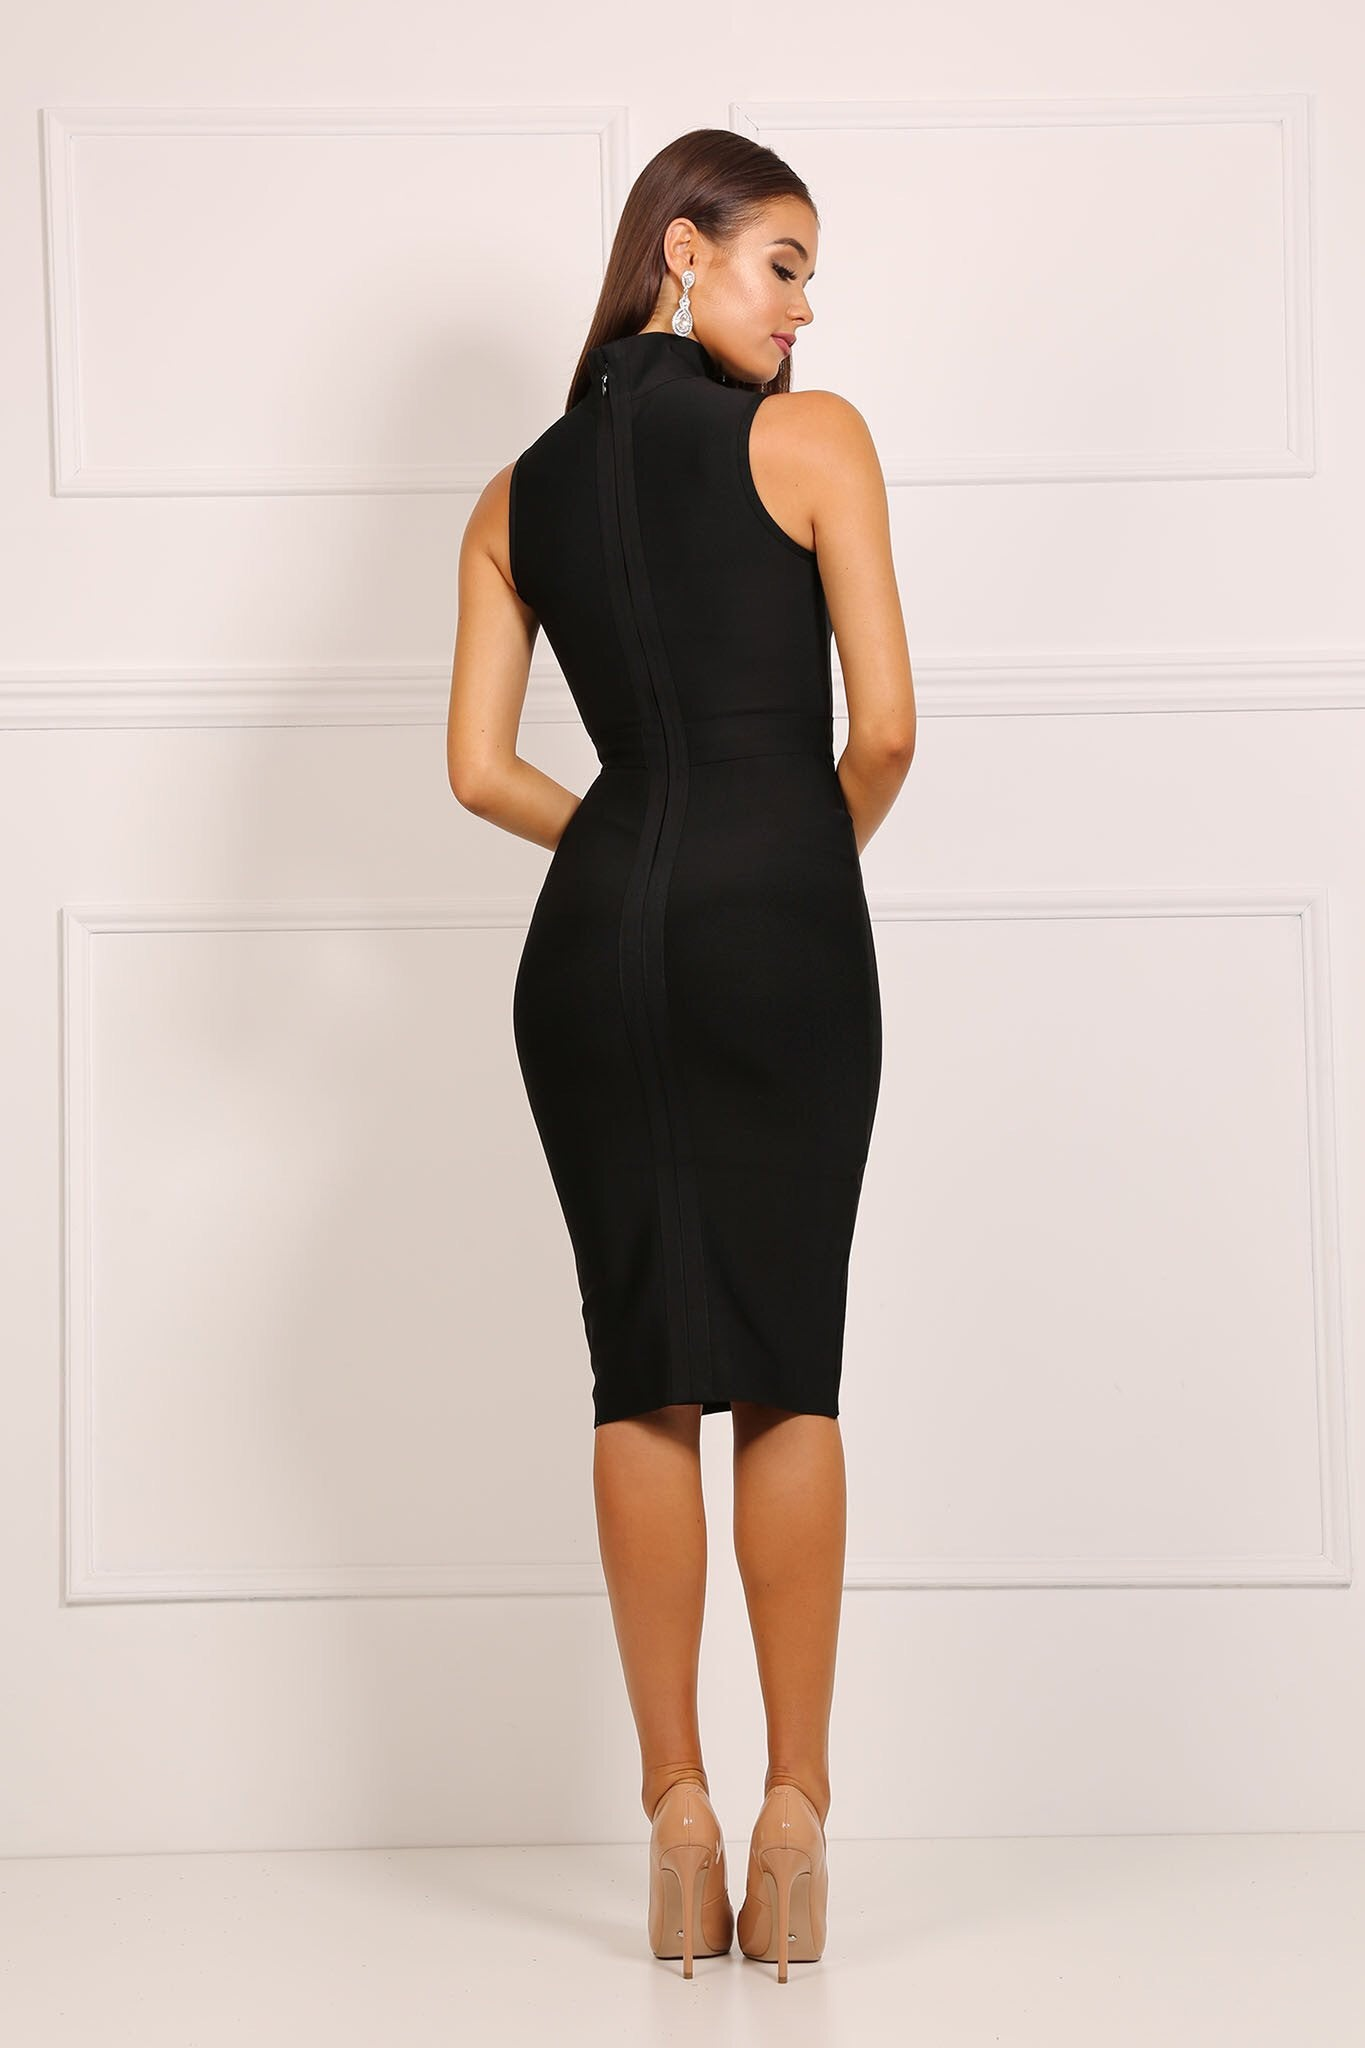 Sydney Black Bandage Dress